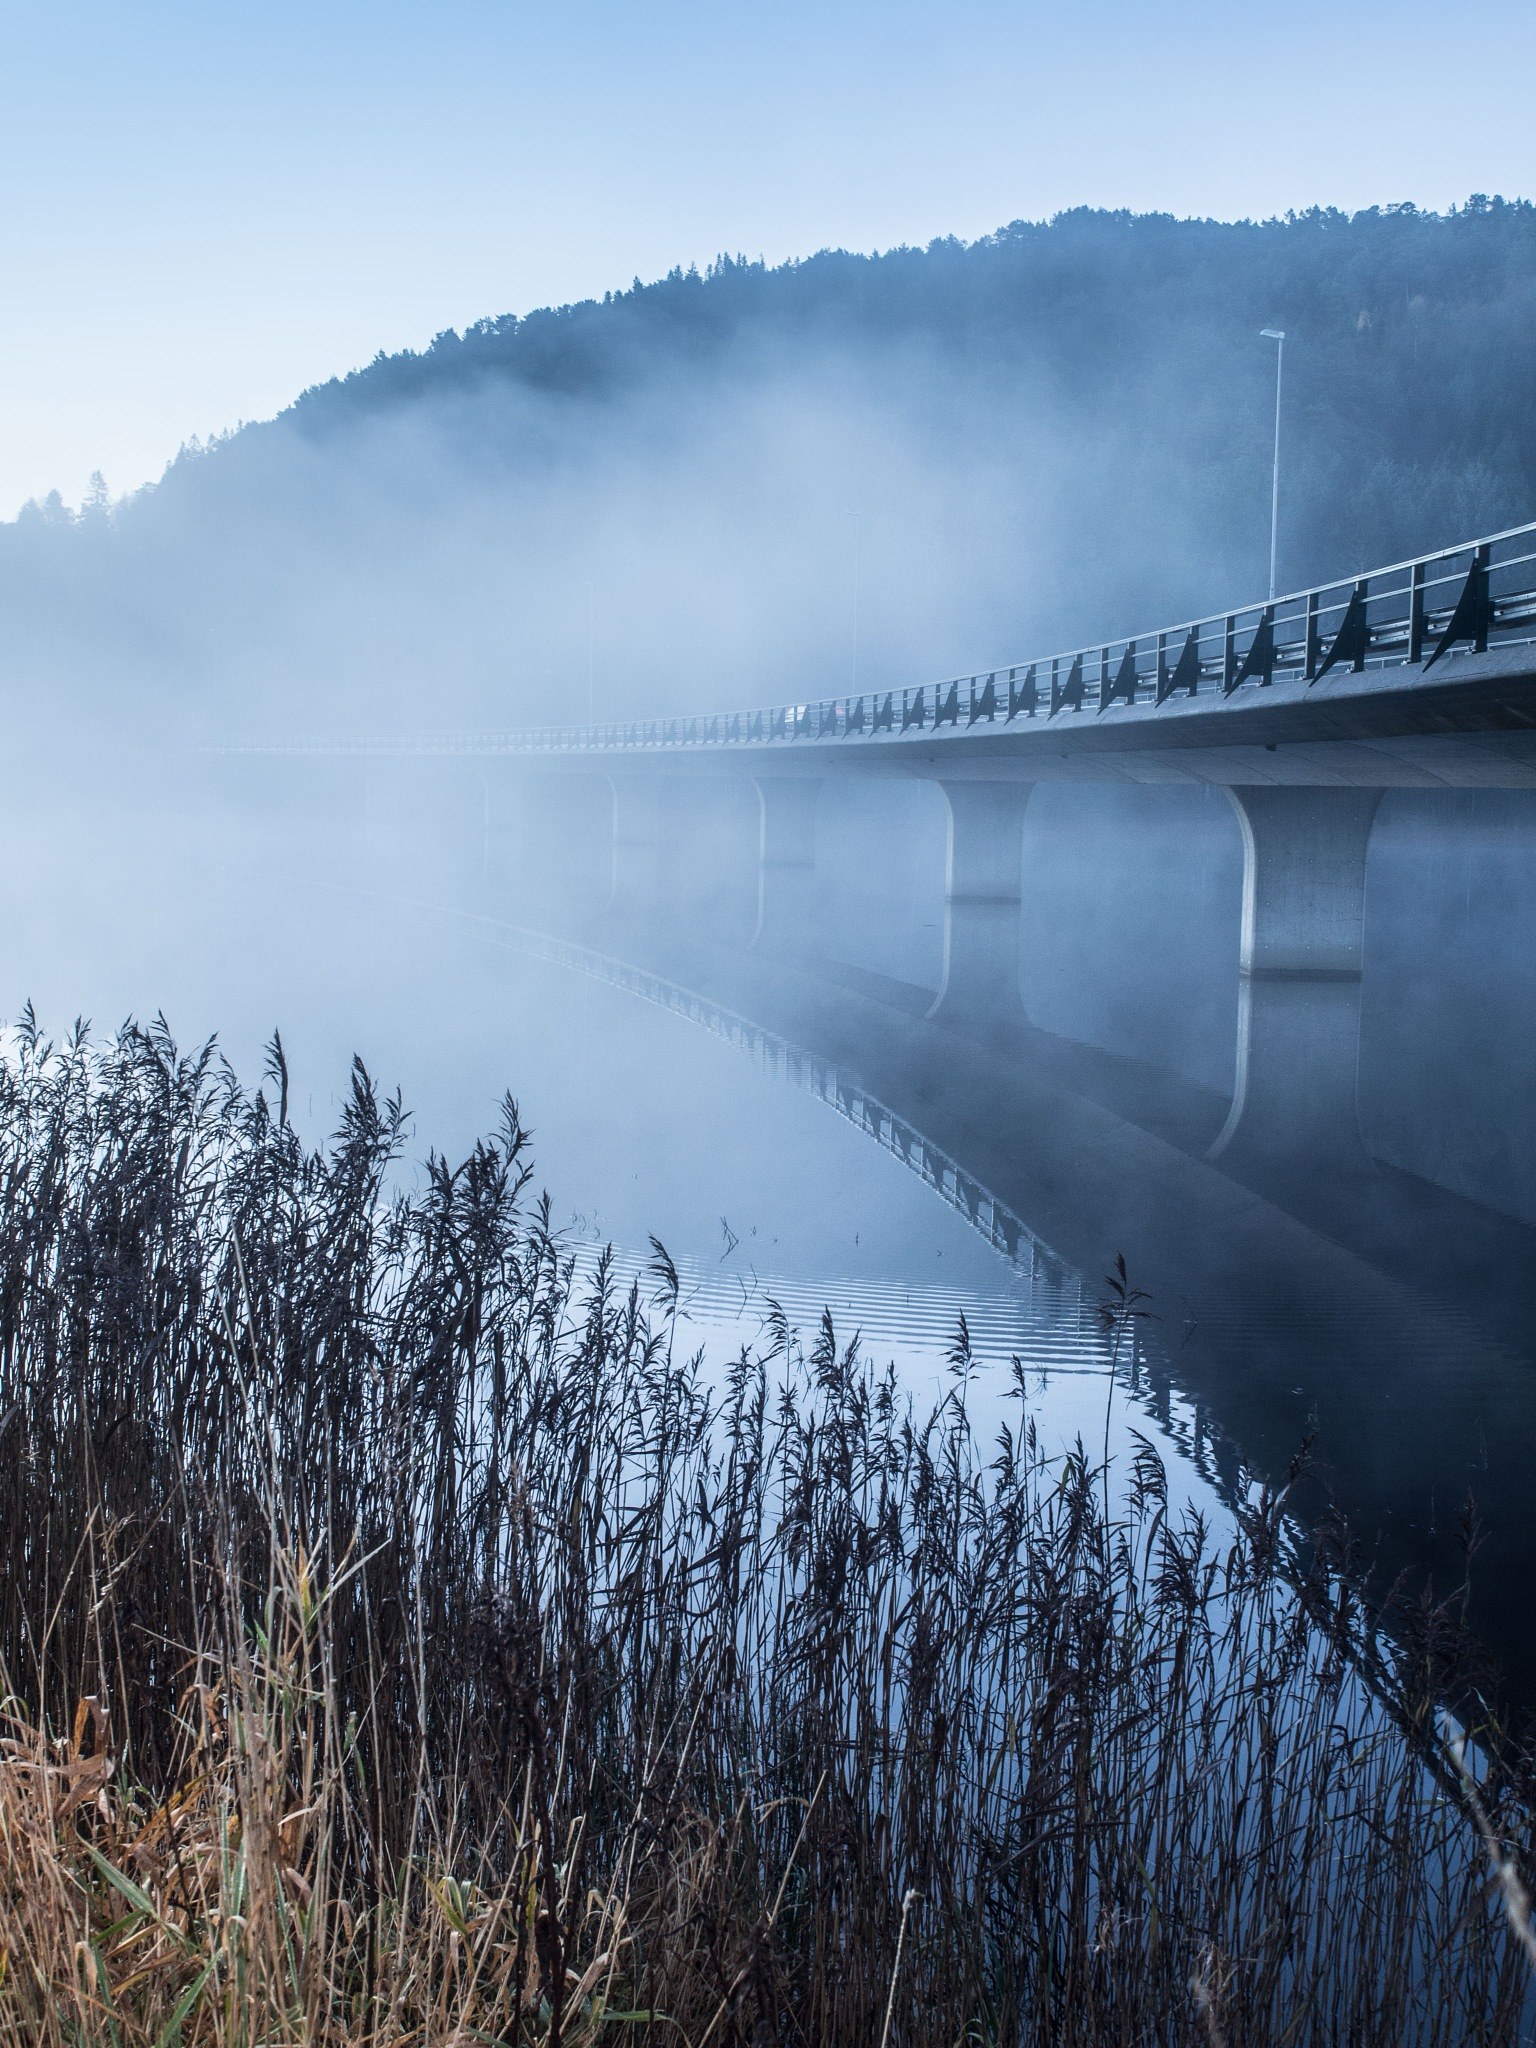 The bridge into the frost mist by Thore's photo